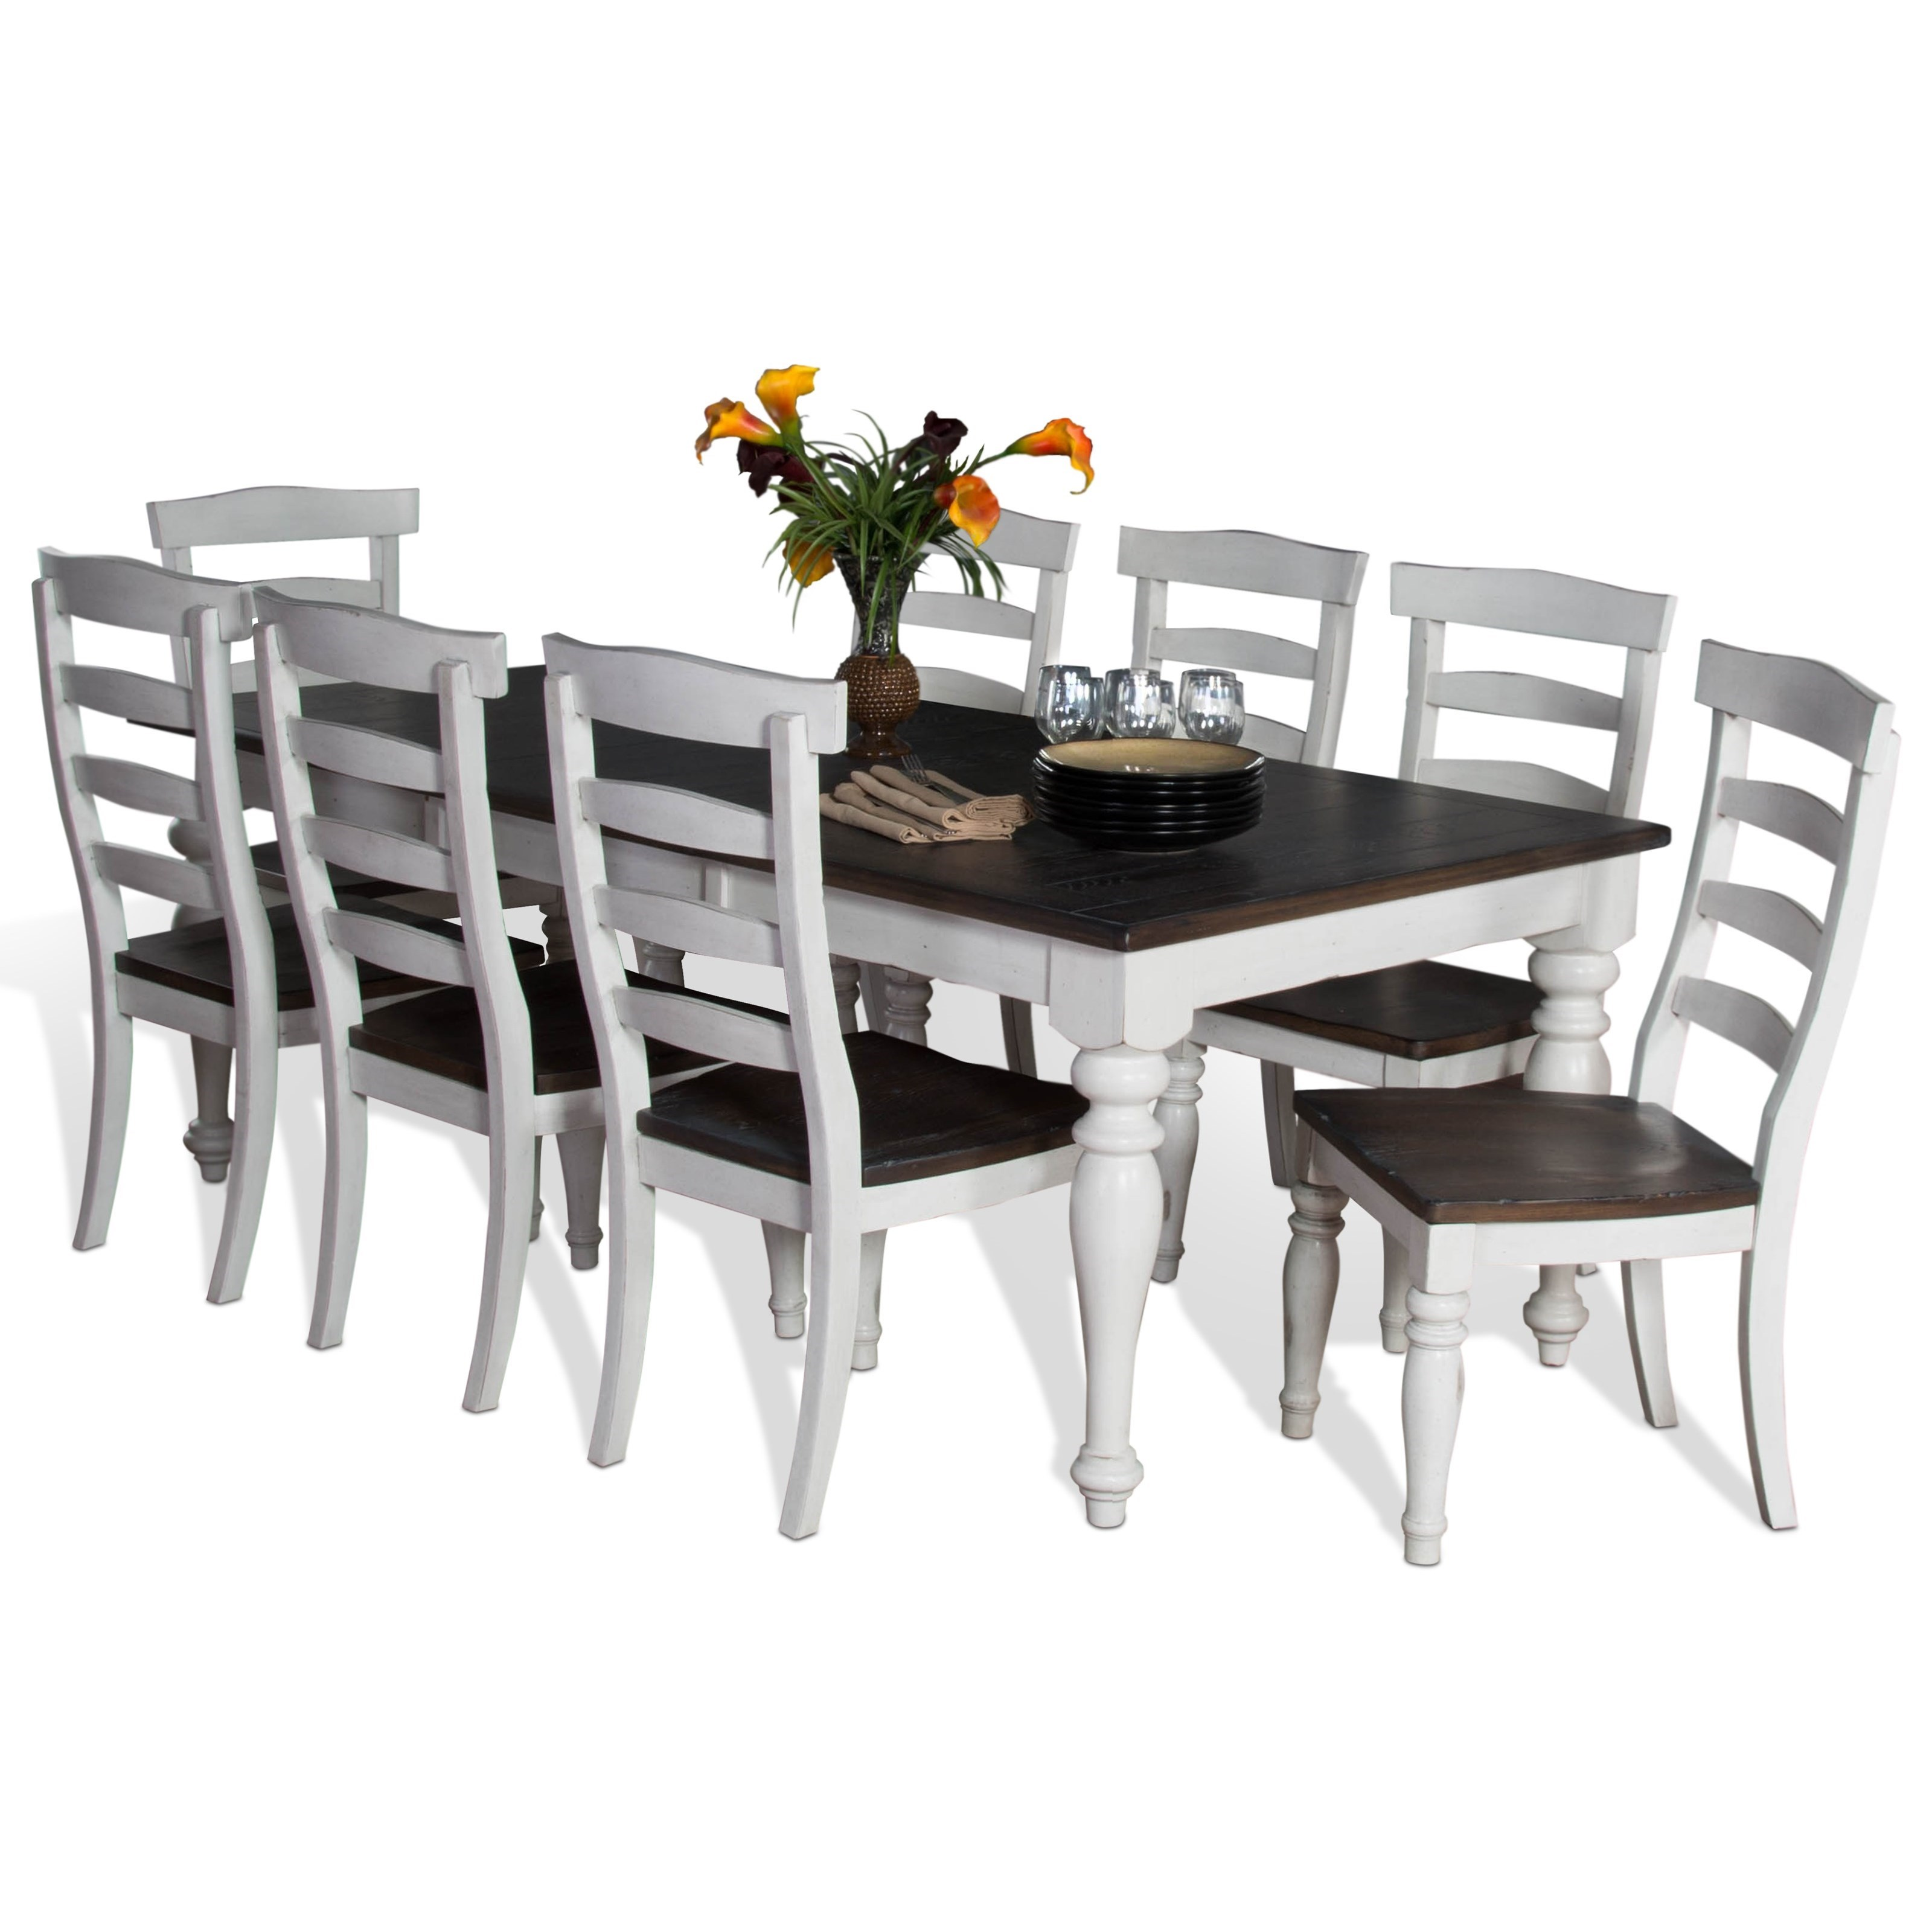 sunny designs bourbon county 9 piece extension dining table set   item number  1015fc sunny designs bourbon county 9 piece extension dining table set      rh   darvin com